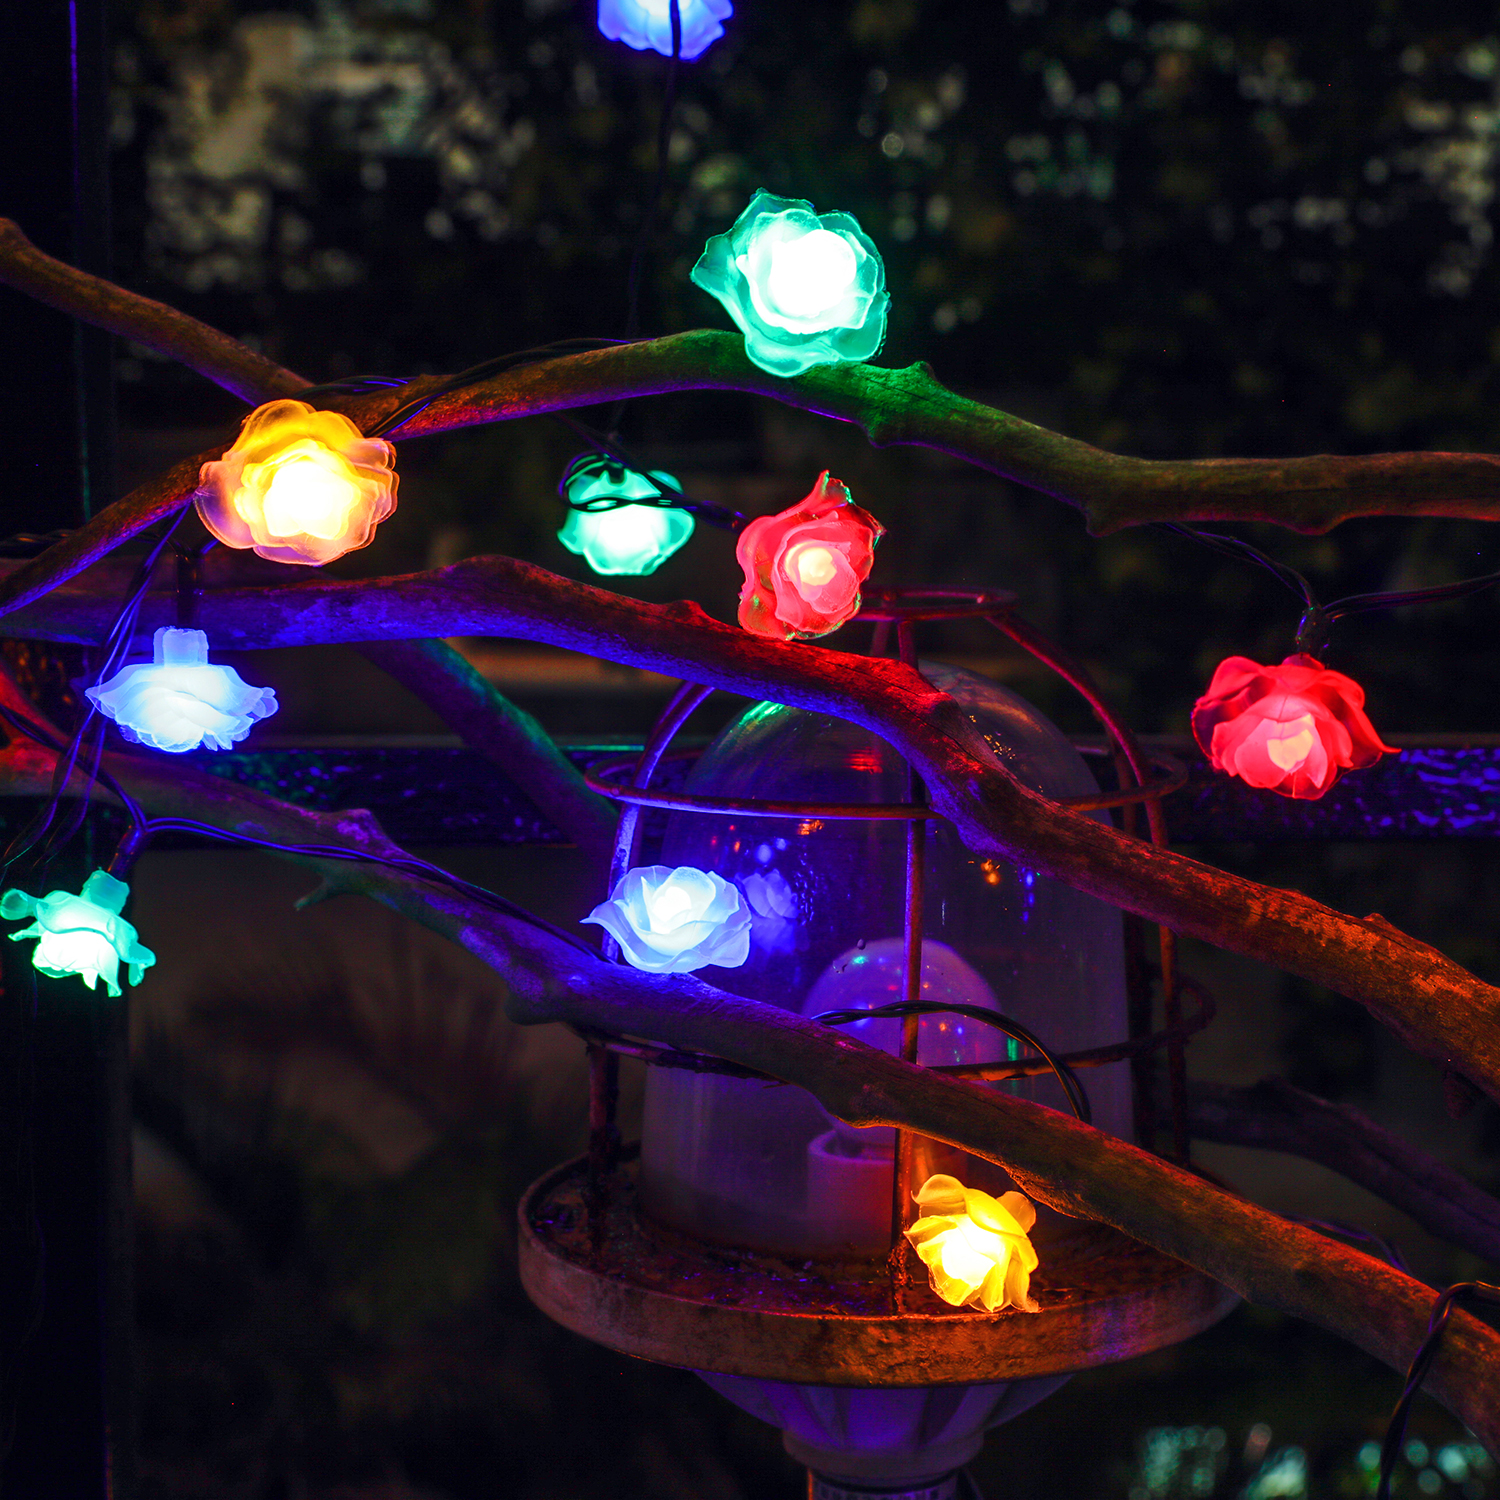 Outdoor String Lights Multicolor : 26ft 50LED Rose Blossom Multi-Color Solar Fairy String Lights Christmas Outdoor eBay